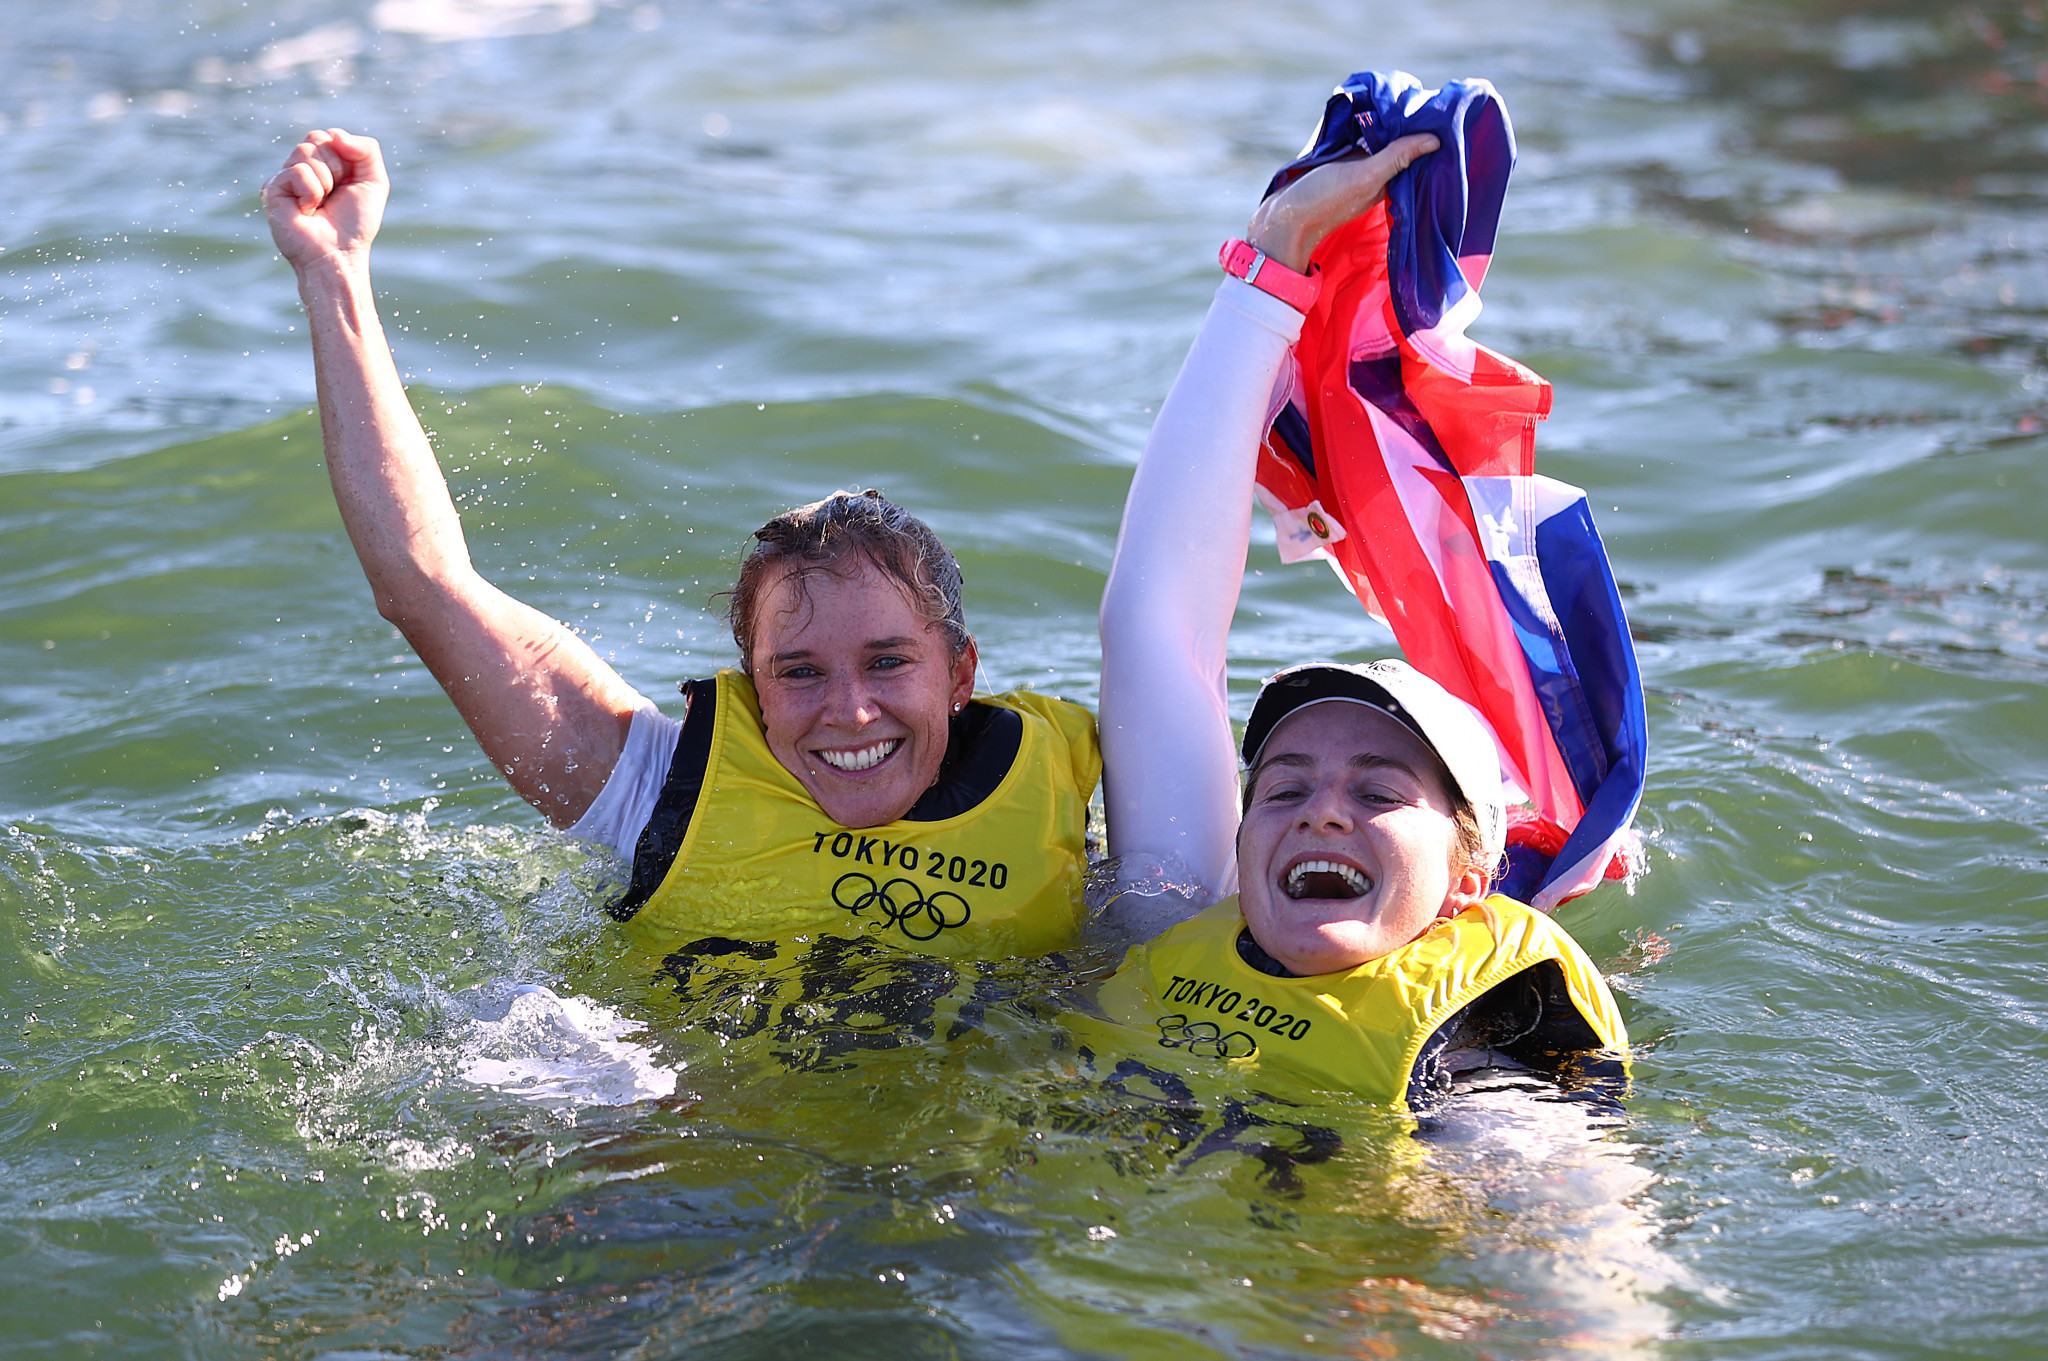 Mills becomes most successful female Olympic sailor after 470 gold